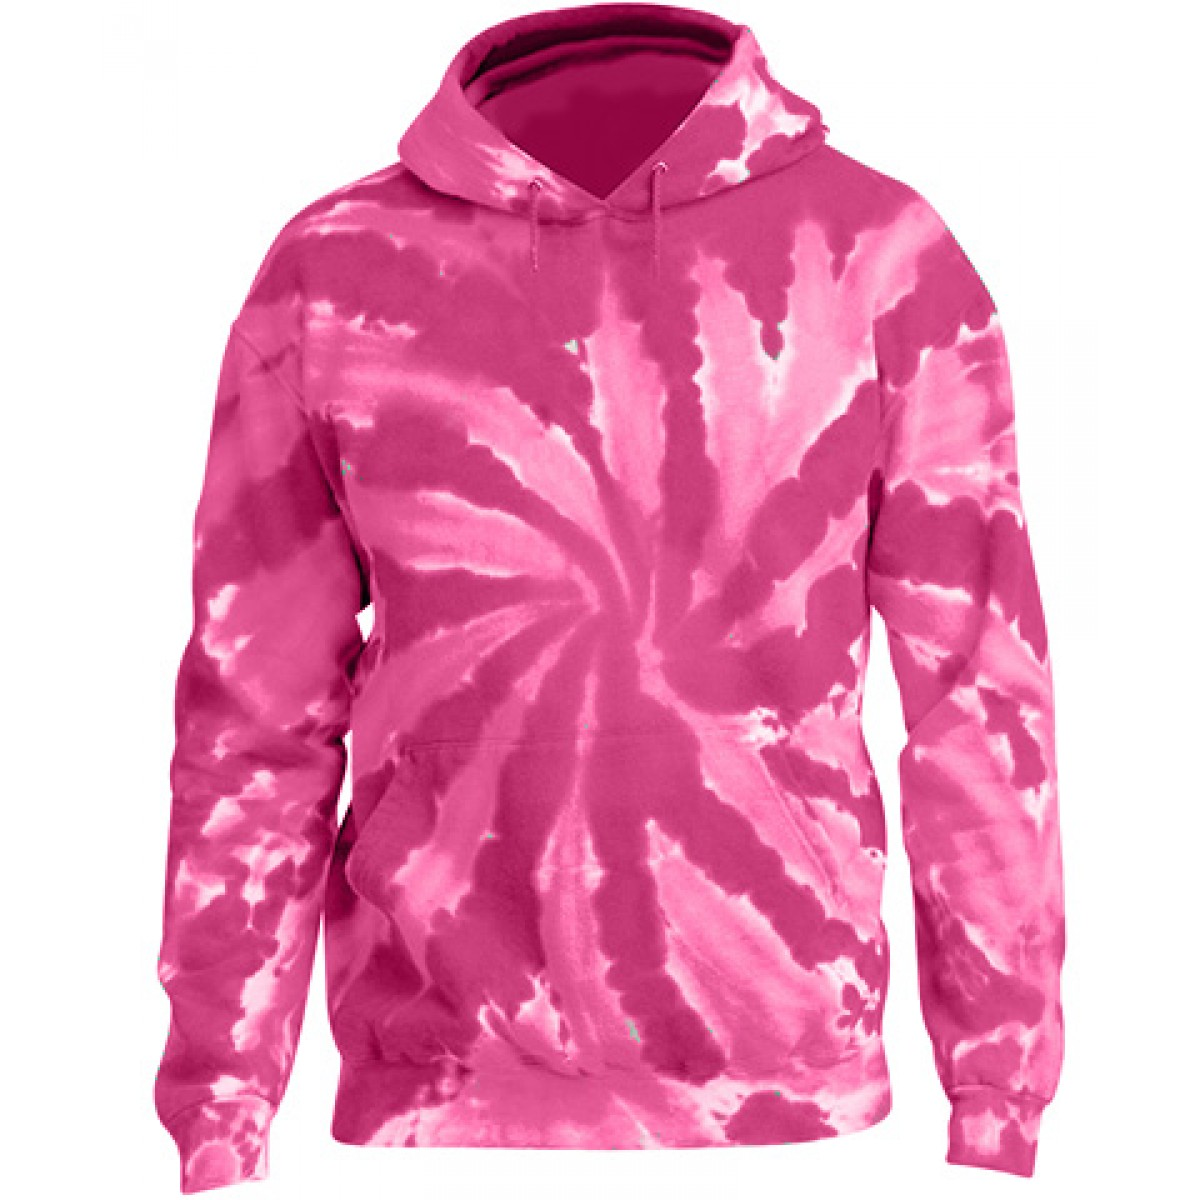 Tie-Dye Pullover Hooded Sweatshirt-Pink-XL